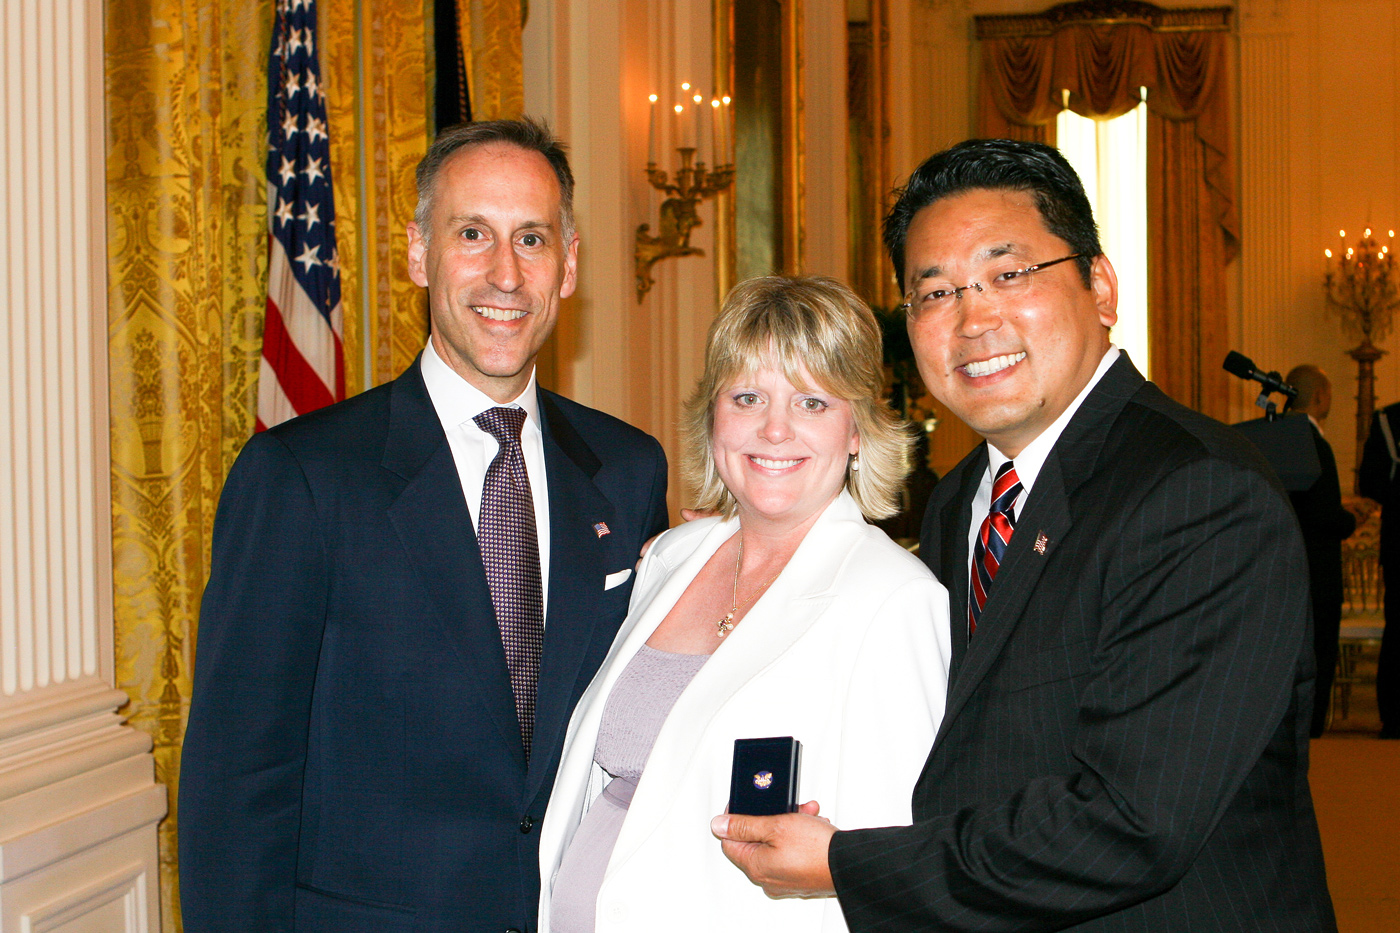 Jack Hawkins, Director of Volunteers for Prosperity (USAID) at the White House celebration of Asian Pacific Heritage Month.Kay Hiramine of Colorado Springs, Colo., recipient of the President's Volunteer Service award and Volunteers for Prosperity participant.